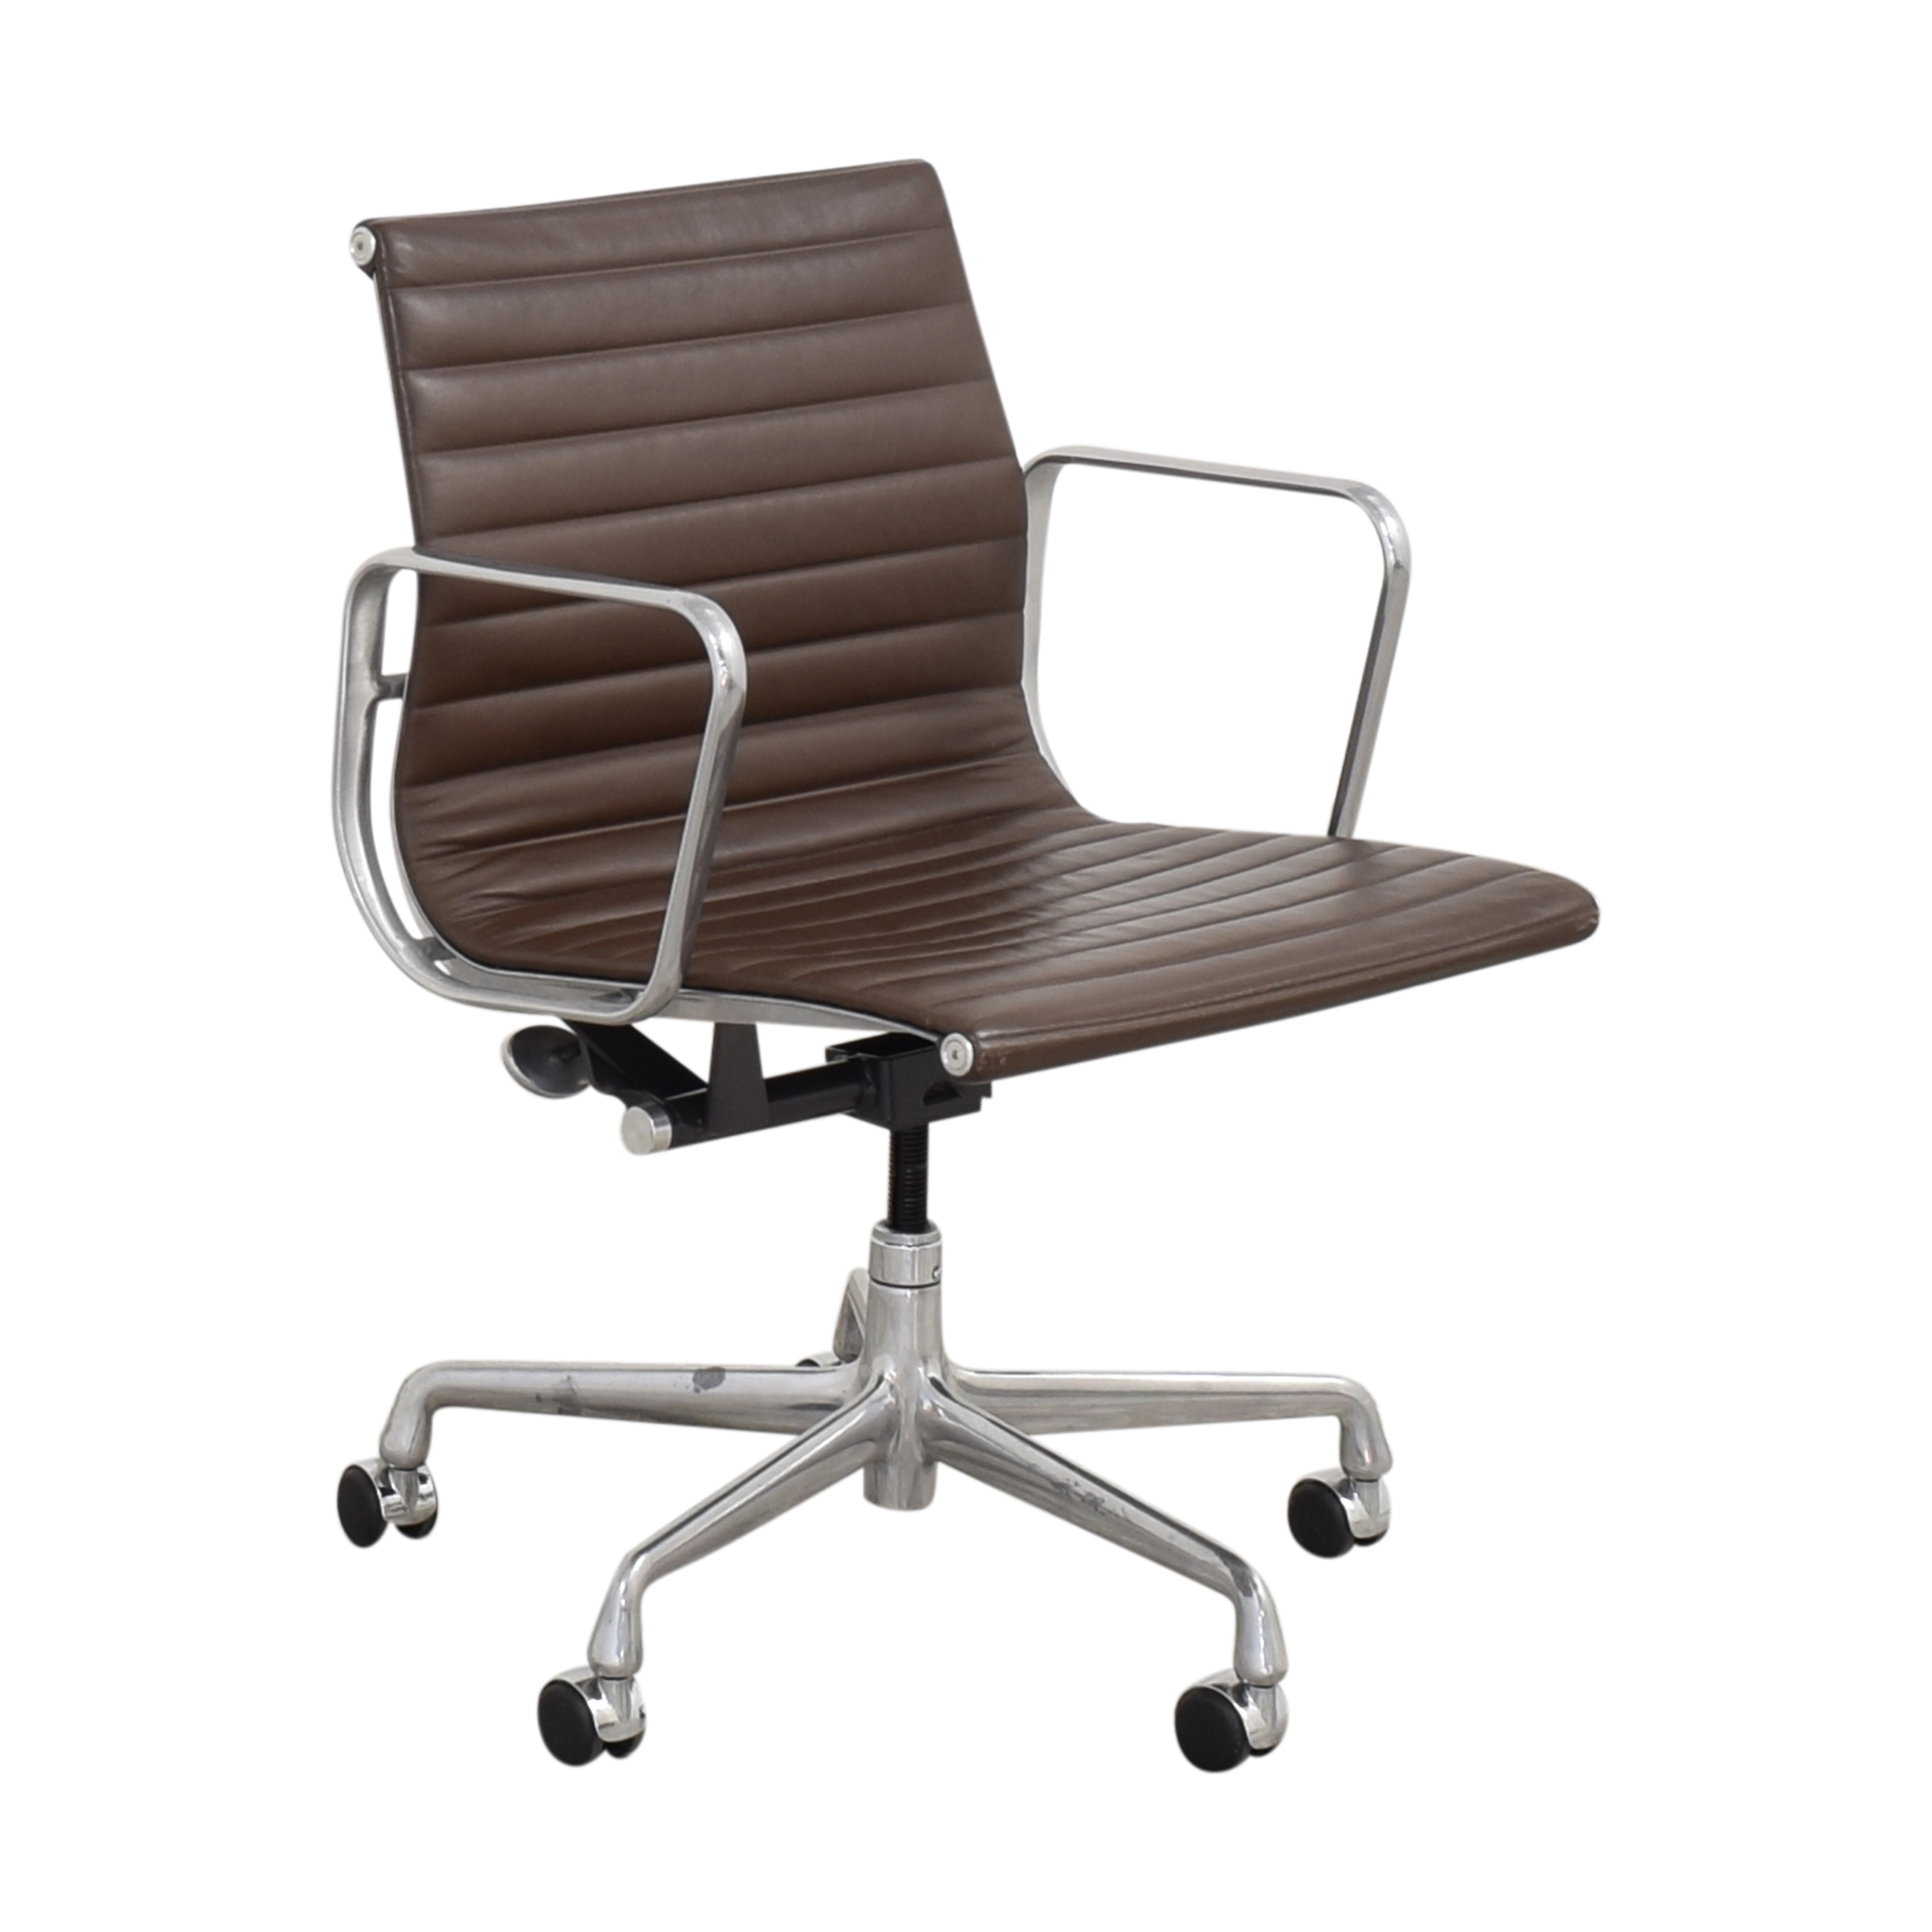 Herman Miller Eames Aluminum Group Management Chair / Chairs